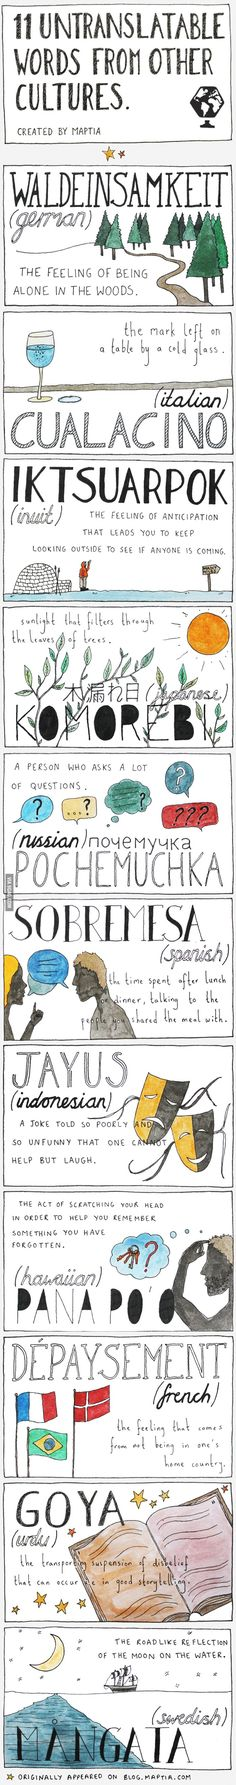 Untranslatable Words: windows into a diverse array of cultures